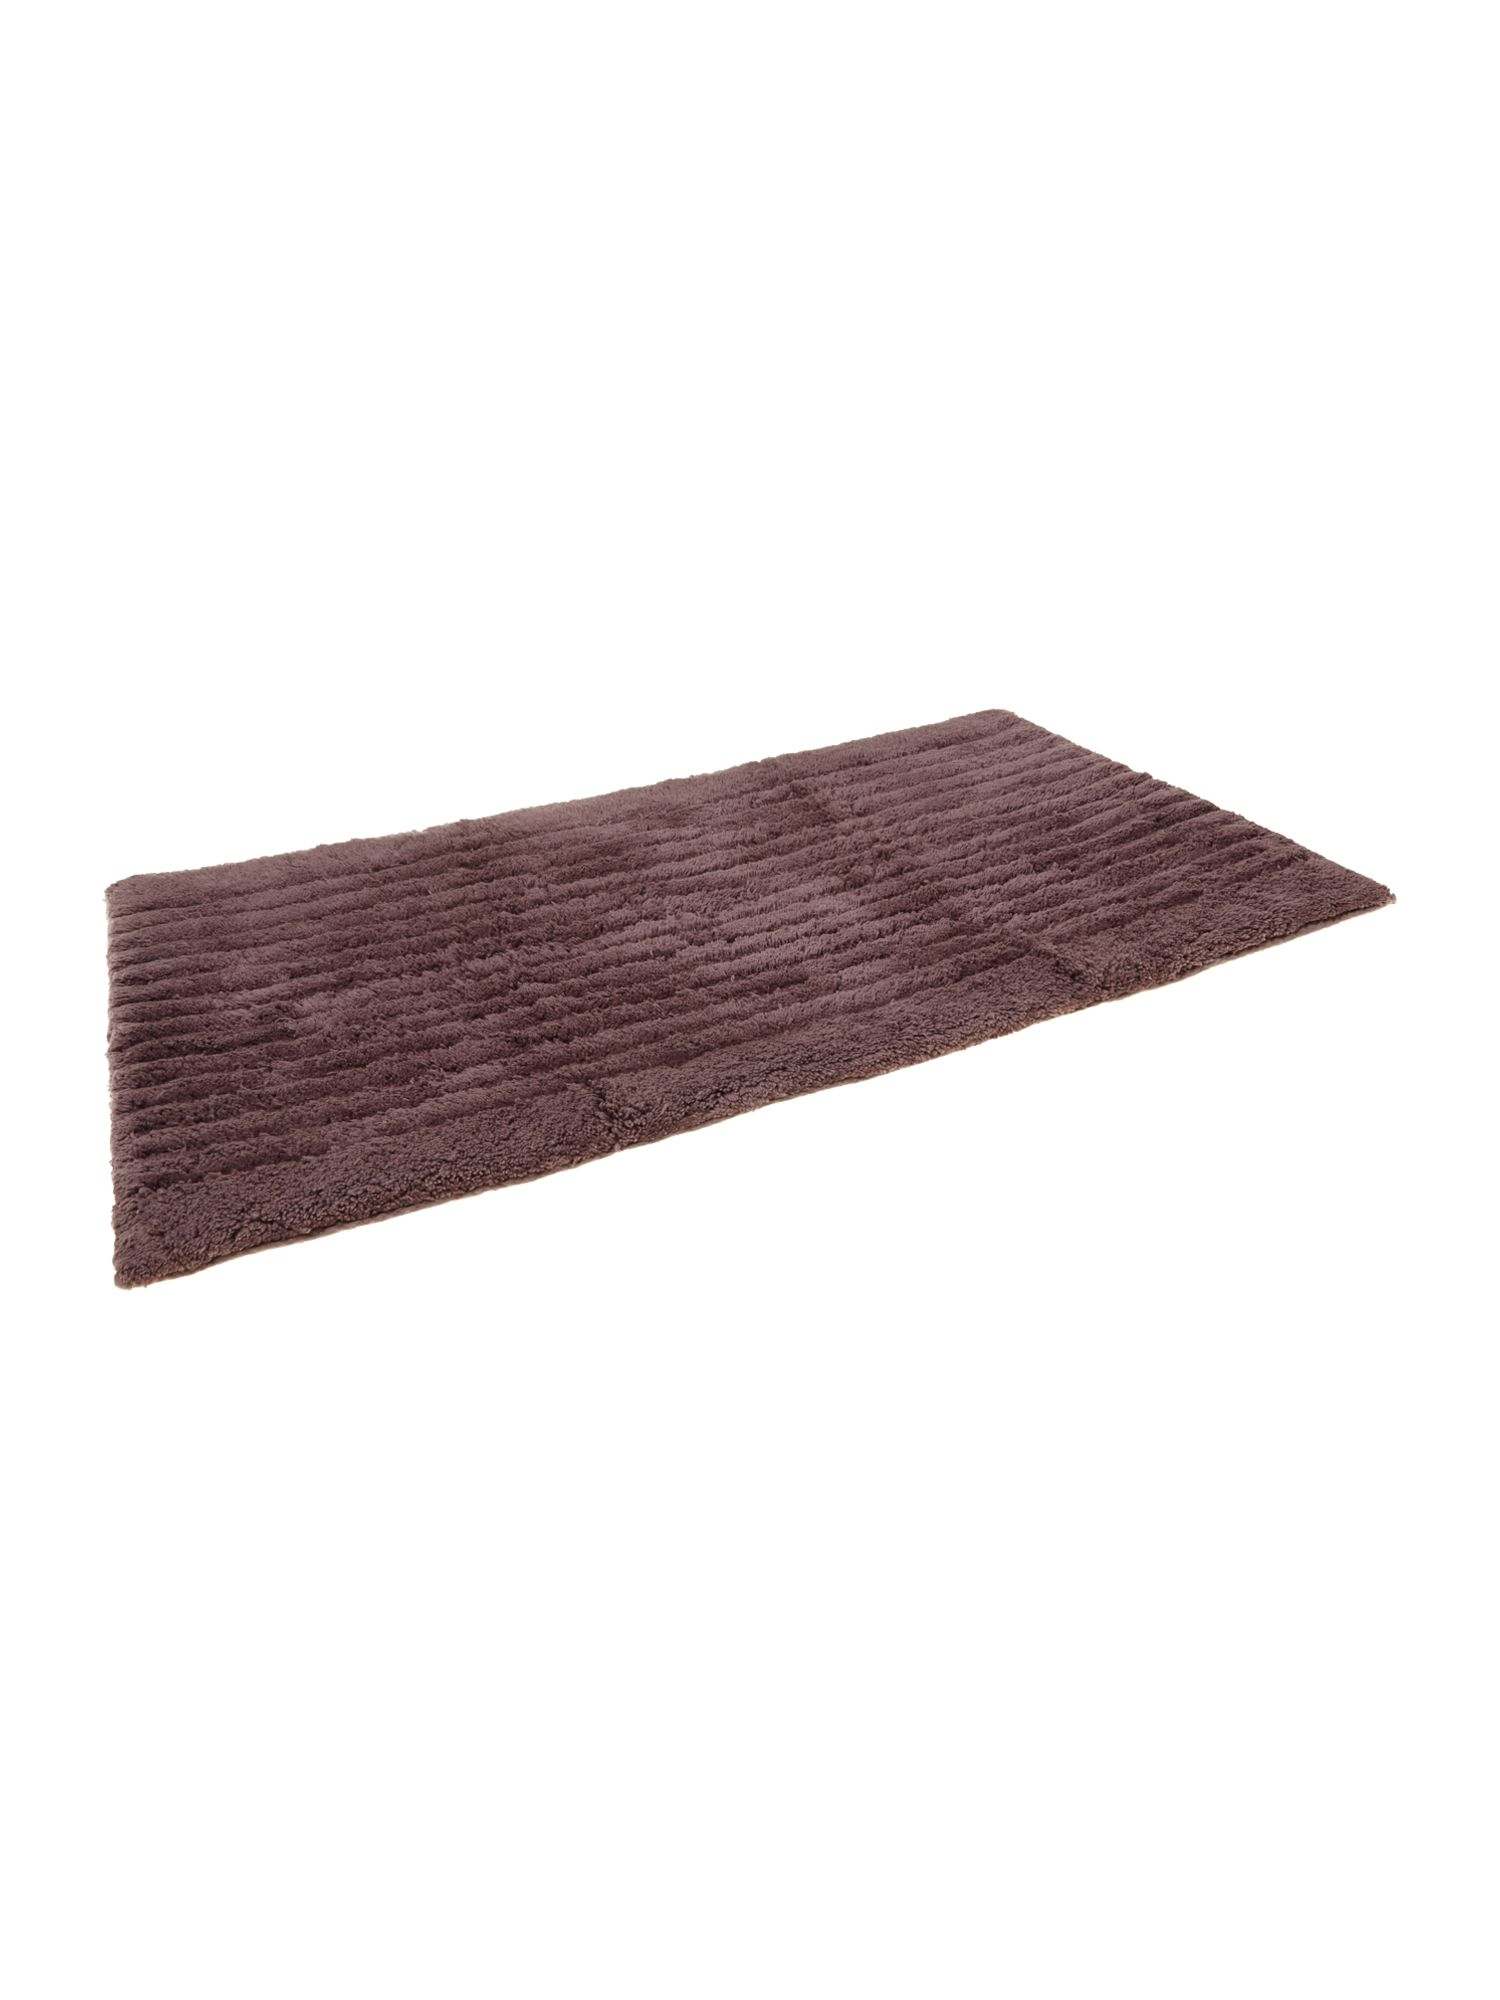 Classic luxury bathmat amethyst